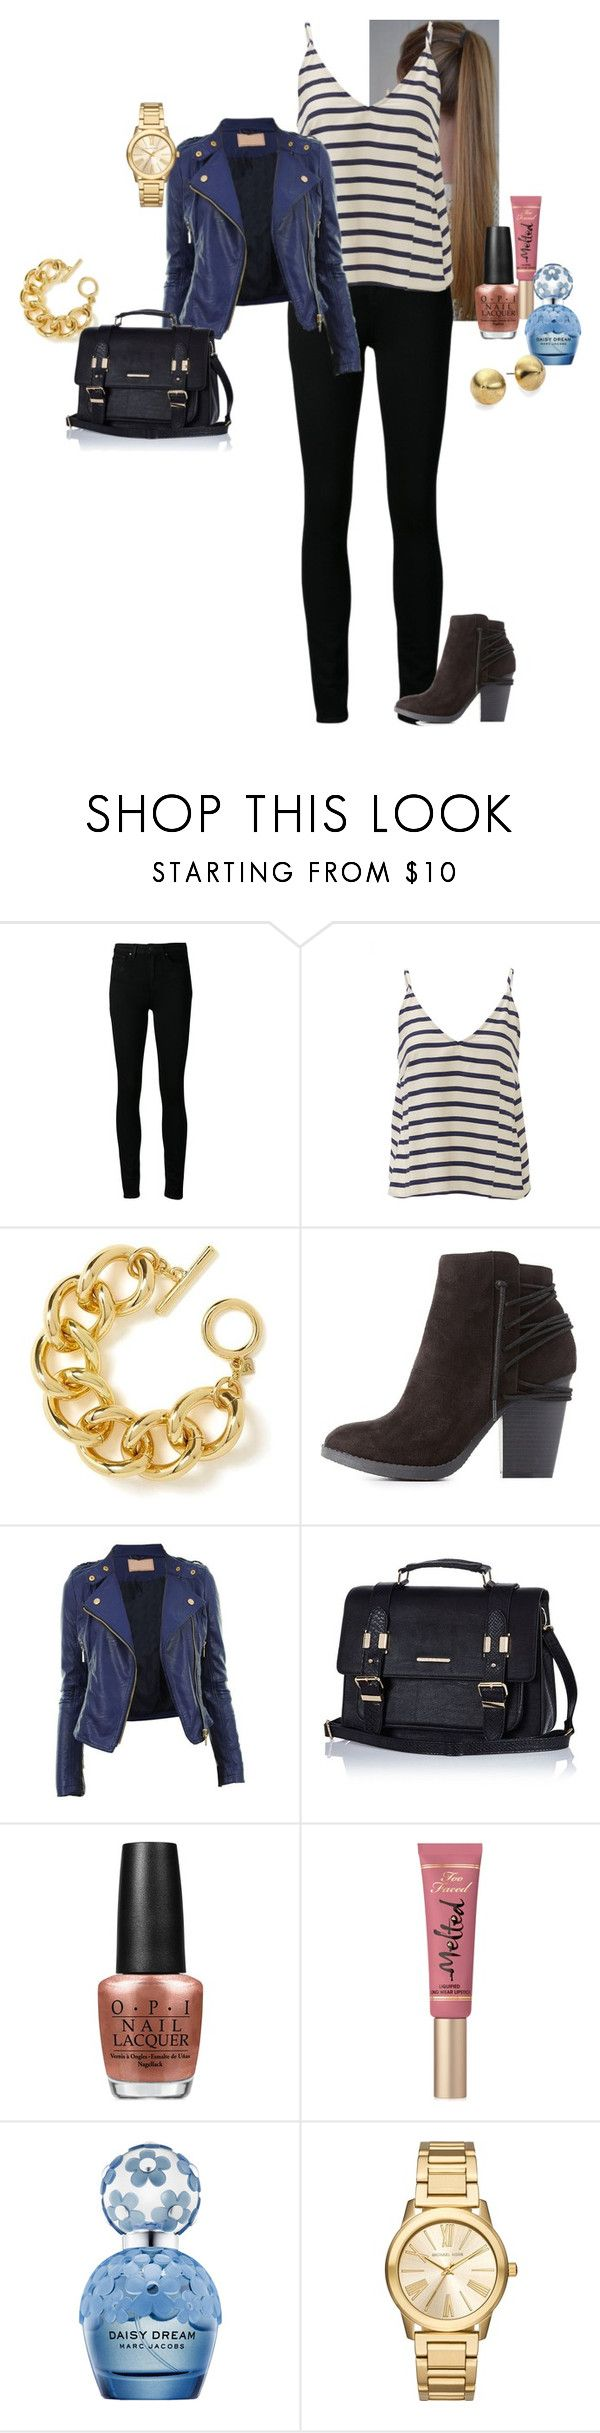 """Alicia-Kathleen ""Kat"" Layden - Never Be The Same (2)"" by katlayden ❤ liked on Polyvore featuring Paige Denim, Astr, Banana Republic, Charlotte Russe, River Island, OPI, Too Faced Cosmetics, Marc Jacobs, Michael Kors and Nest"